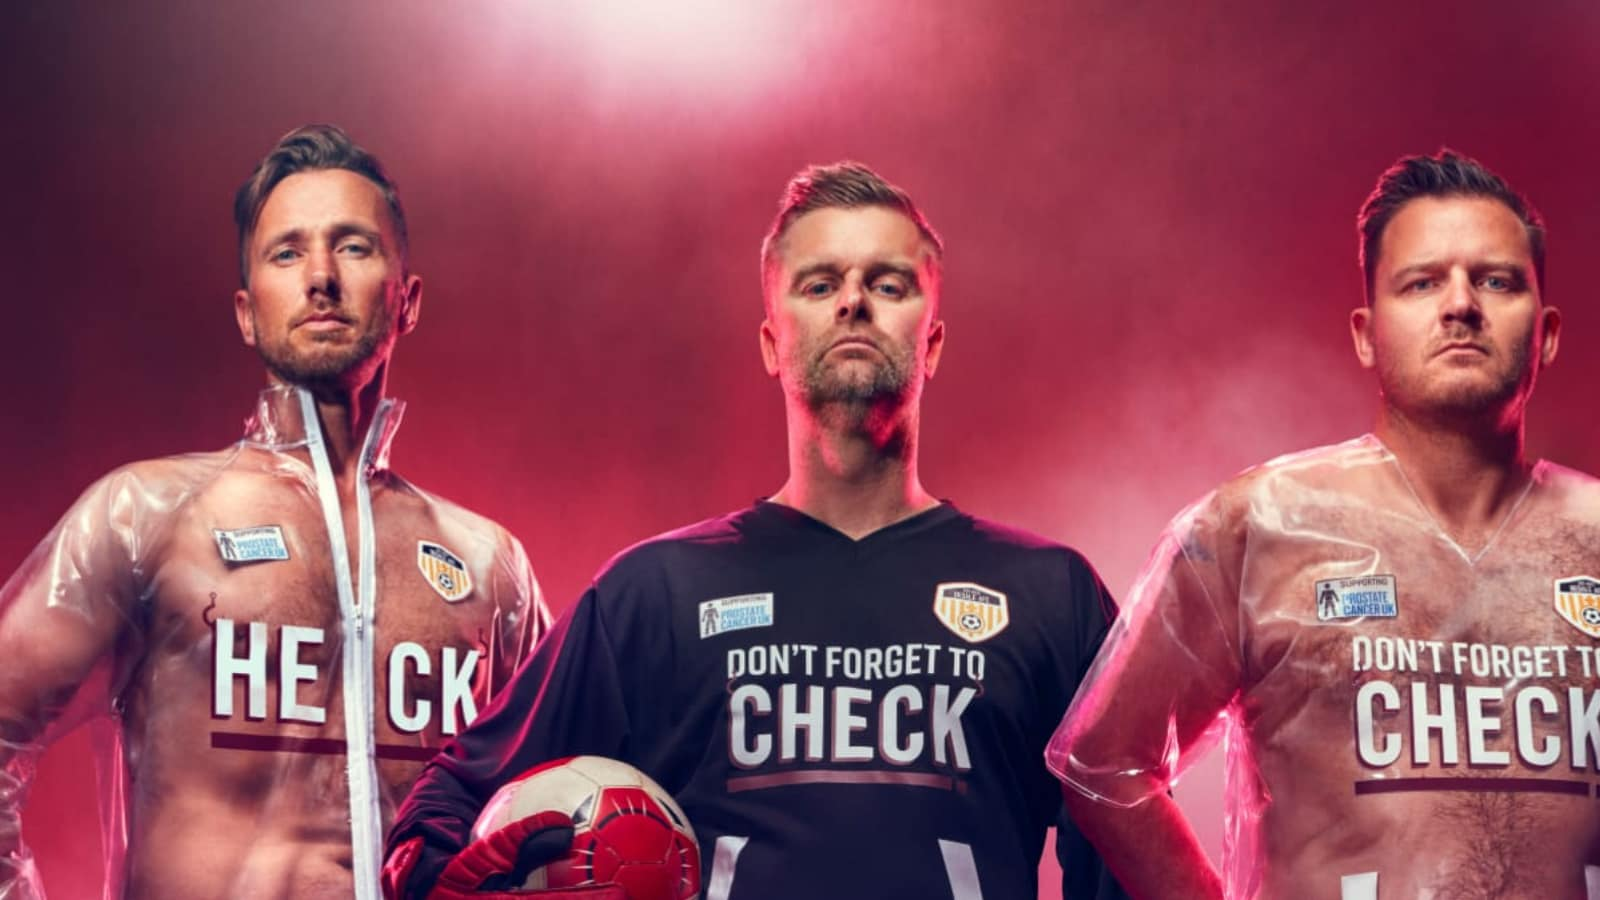 Football Team Bedale AFC Unveil World's First See-through Kit to Raise Awareness About an Important Issue